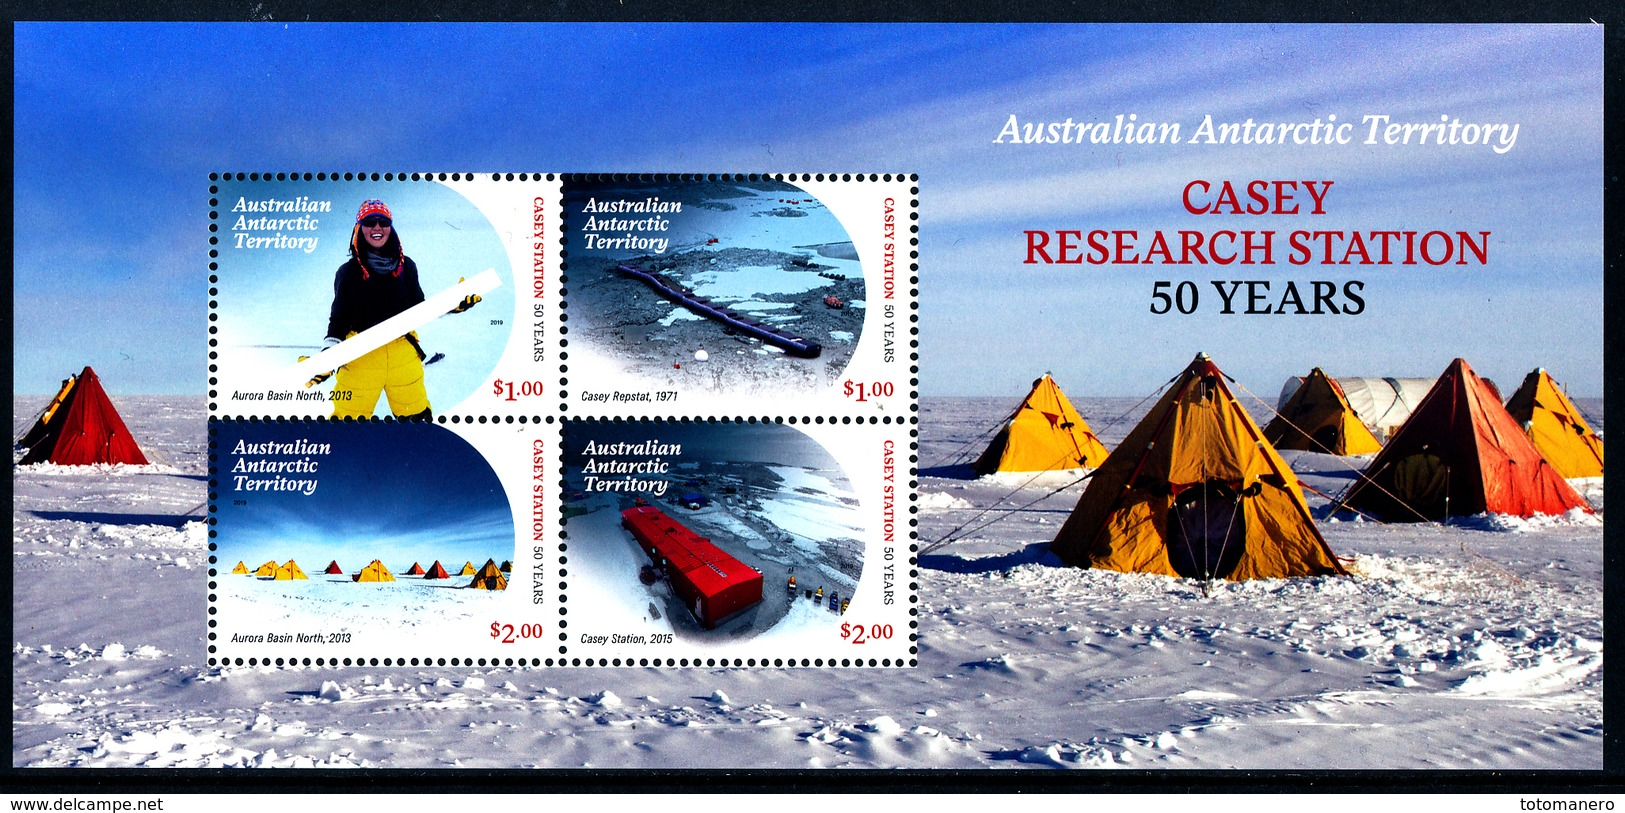 A.A.T. AUSTRALIAN ANTARCTIC TERRITORY 2019, CASEY RESEARCH STATION 50 YEARS Minisheet** - Unused Stamps